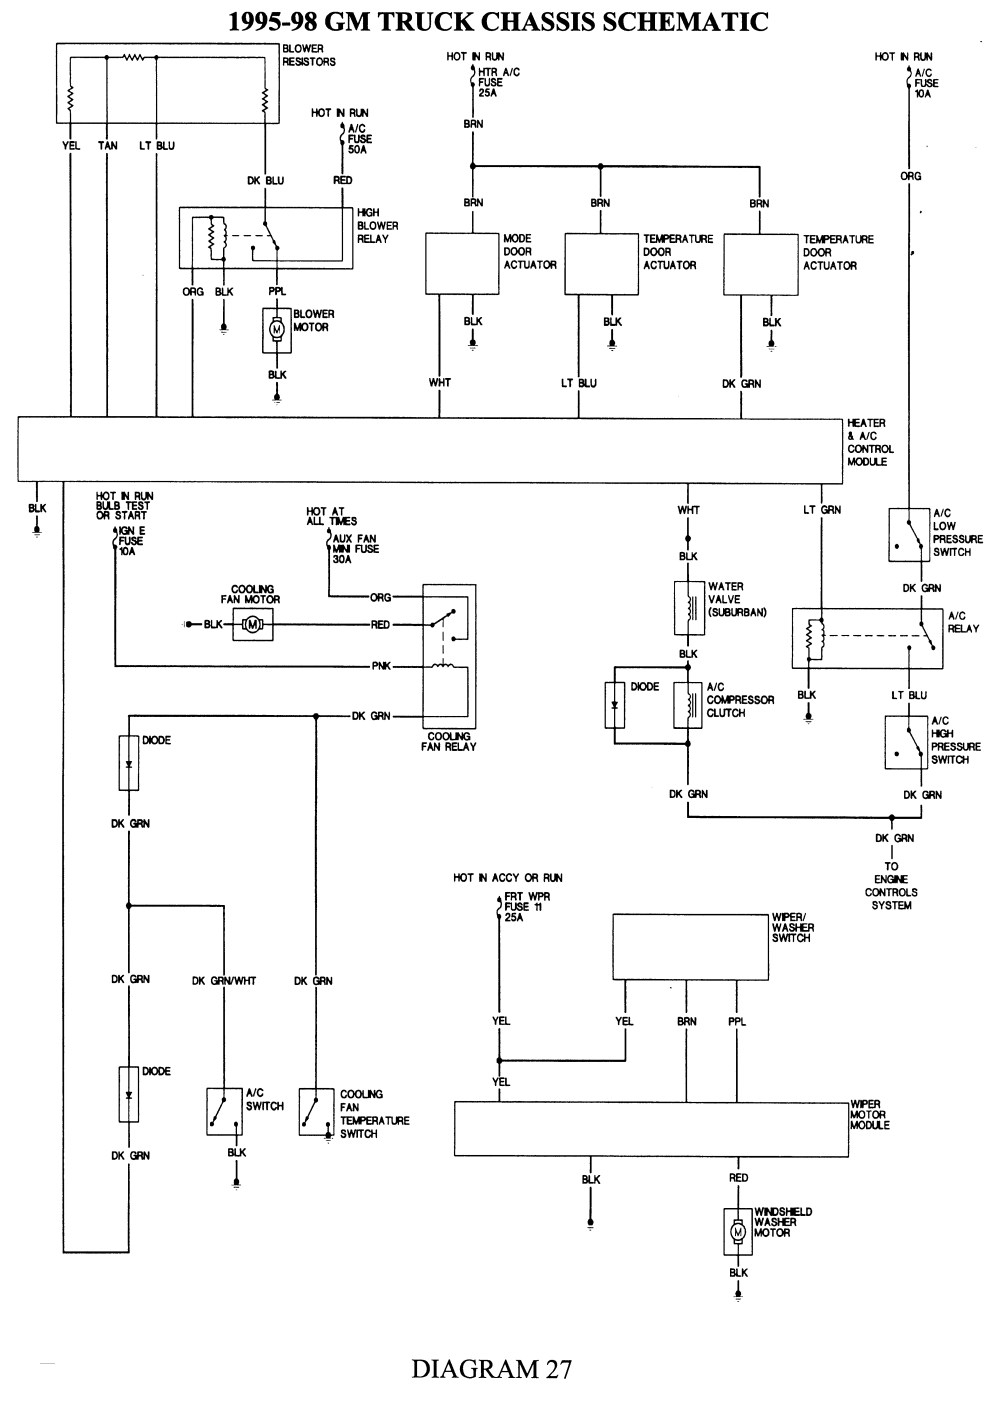 1998 Chevy Tahoe Wiring Diagram - Power Diagram Free Download 1998 Chevy Tahoe Wiring Diagram Wiring Diagram 6t